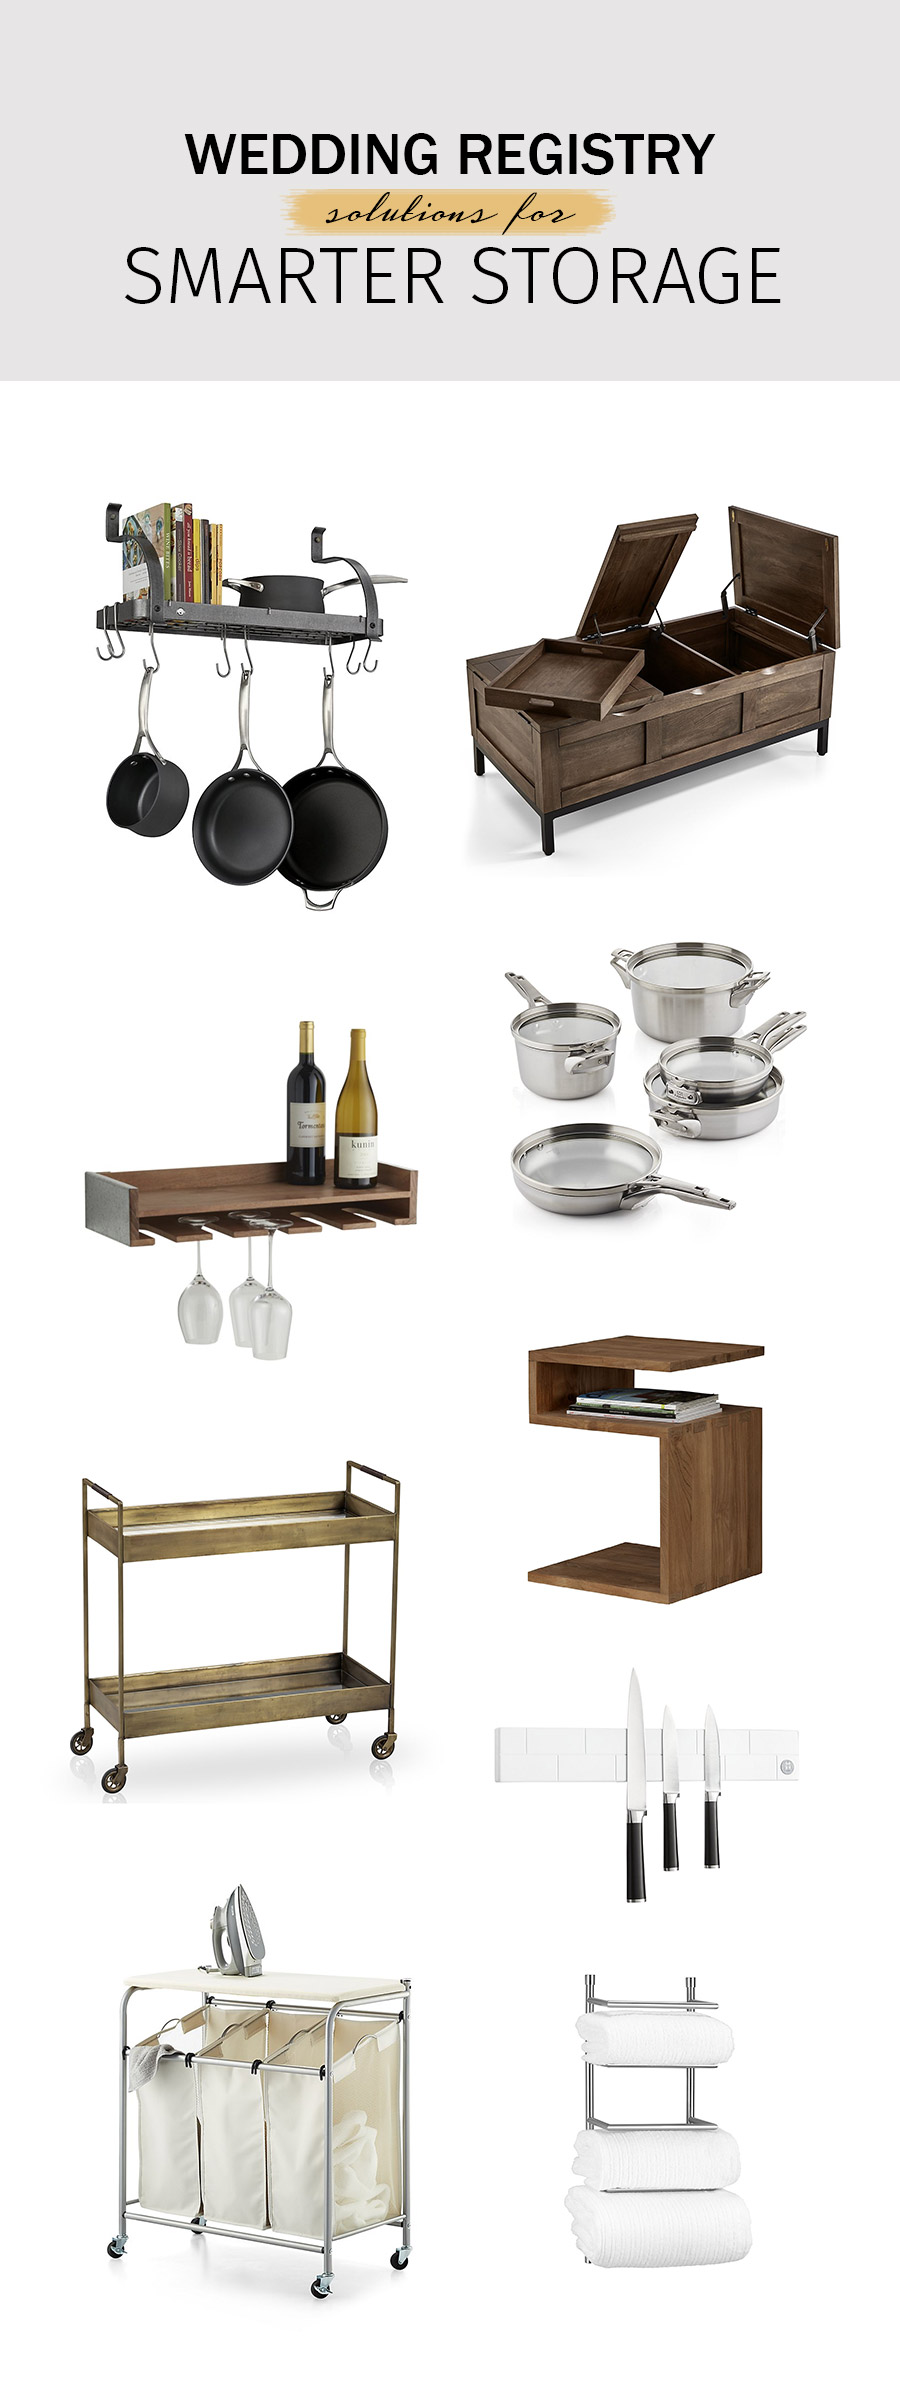 crate and barrel wedding registry ideas 2018 clever storage solutions multi use furniture housewares